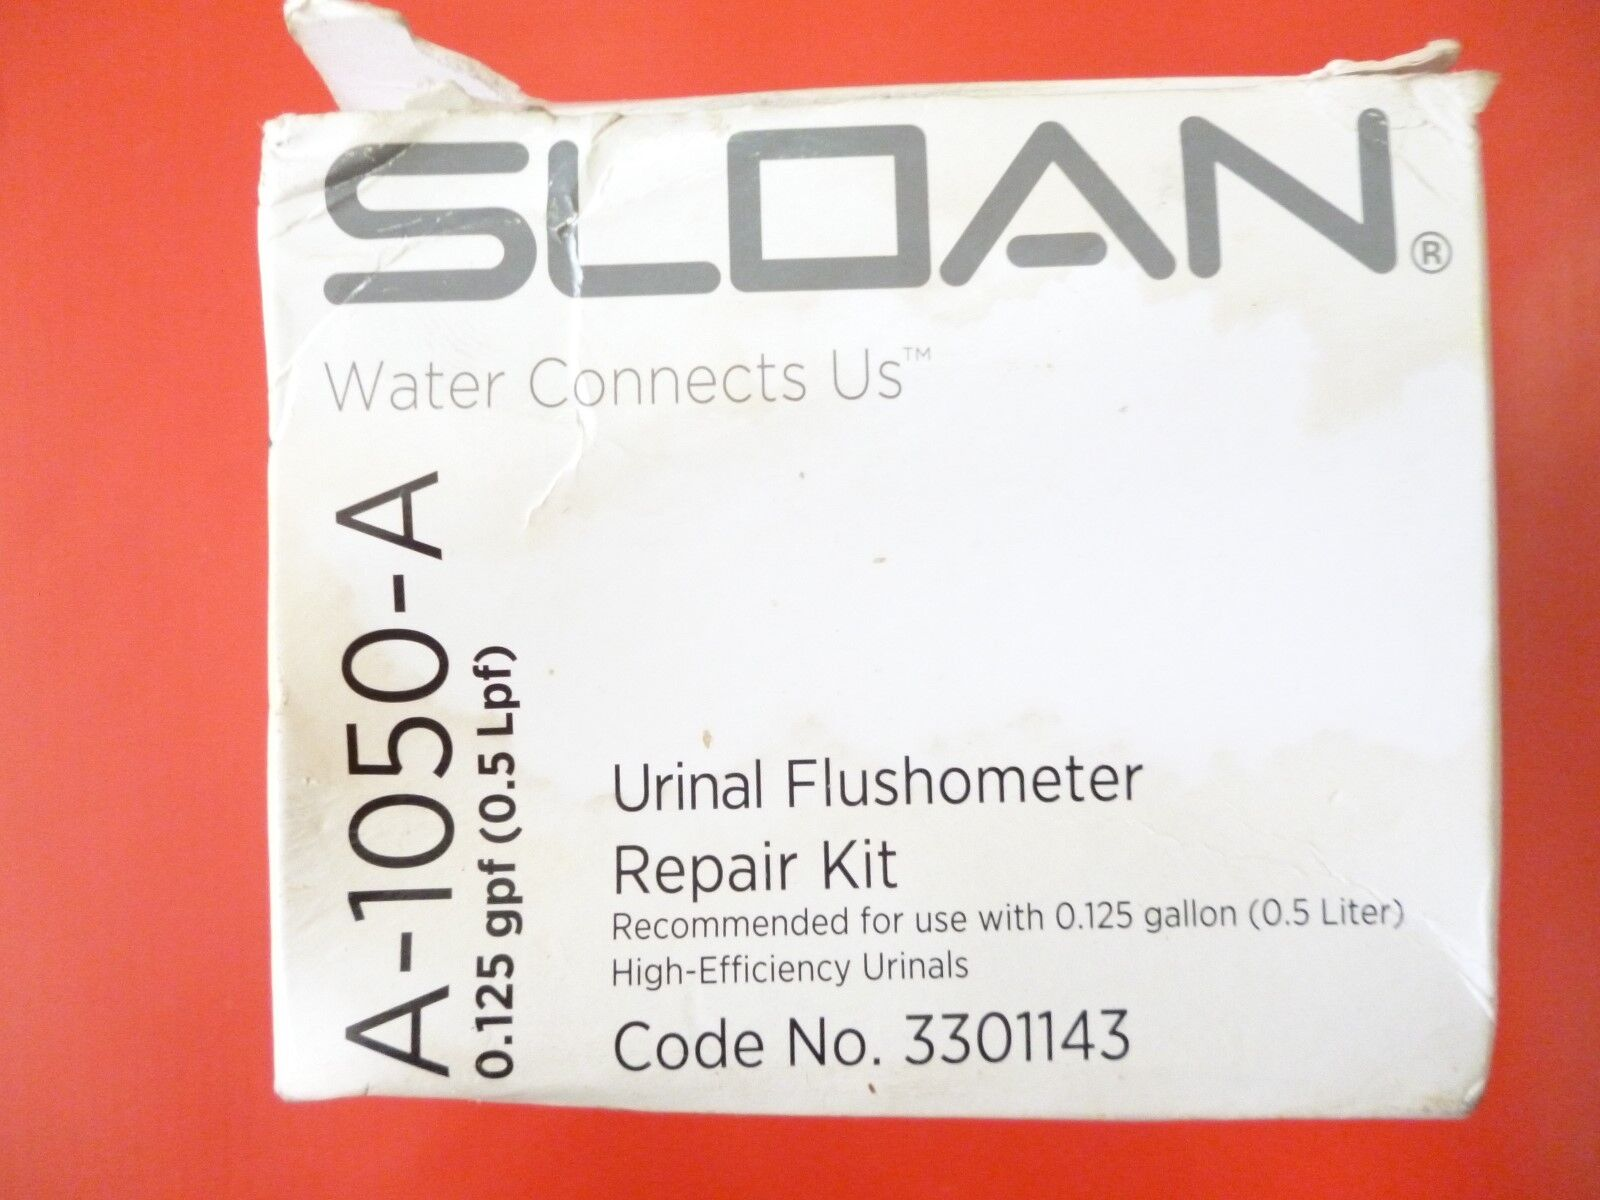 NEW IN BOX SLOAN URINAL FLUSHOMETER REPAIR KIT 0.125 gpf A-1050-A